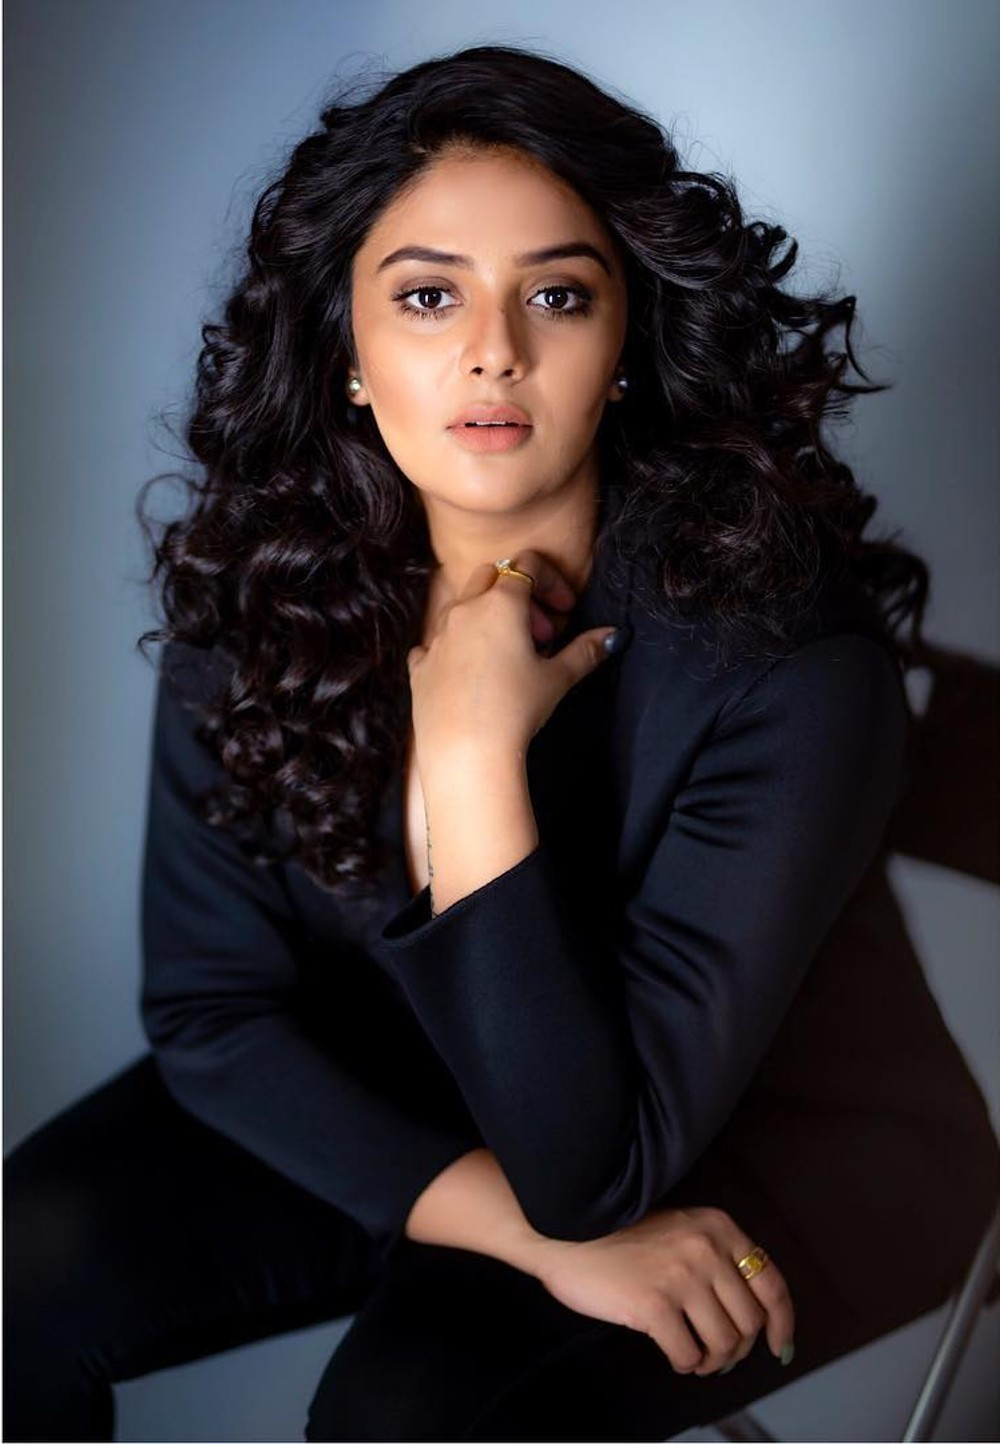 anchor-sreemukhi-recent-photoshoot-pics-6f70580